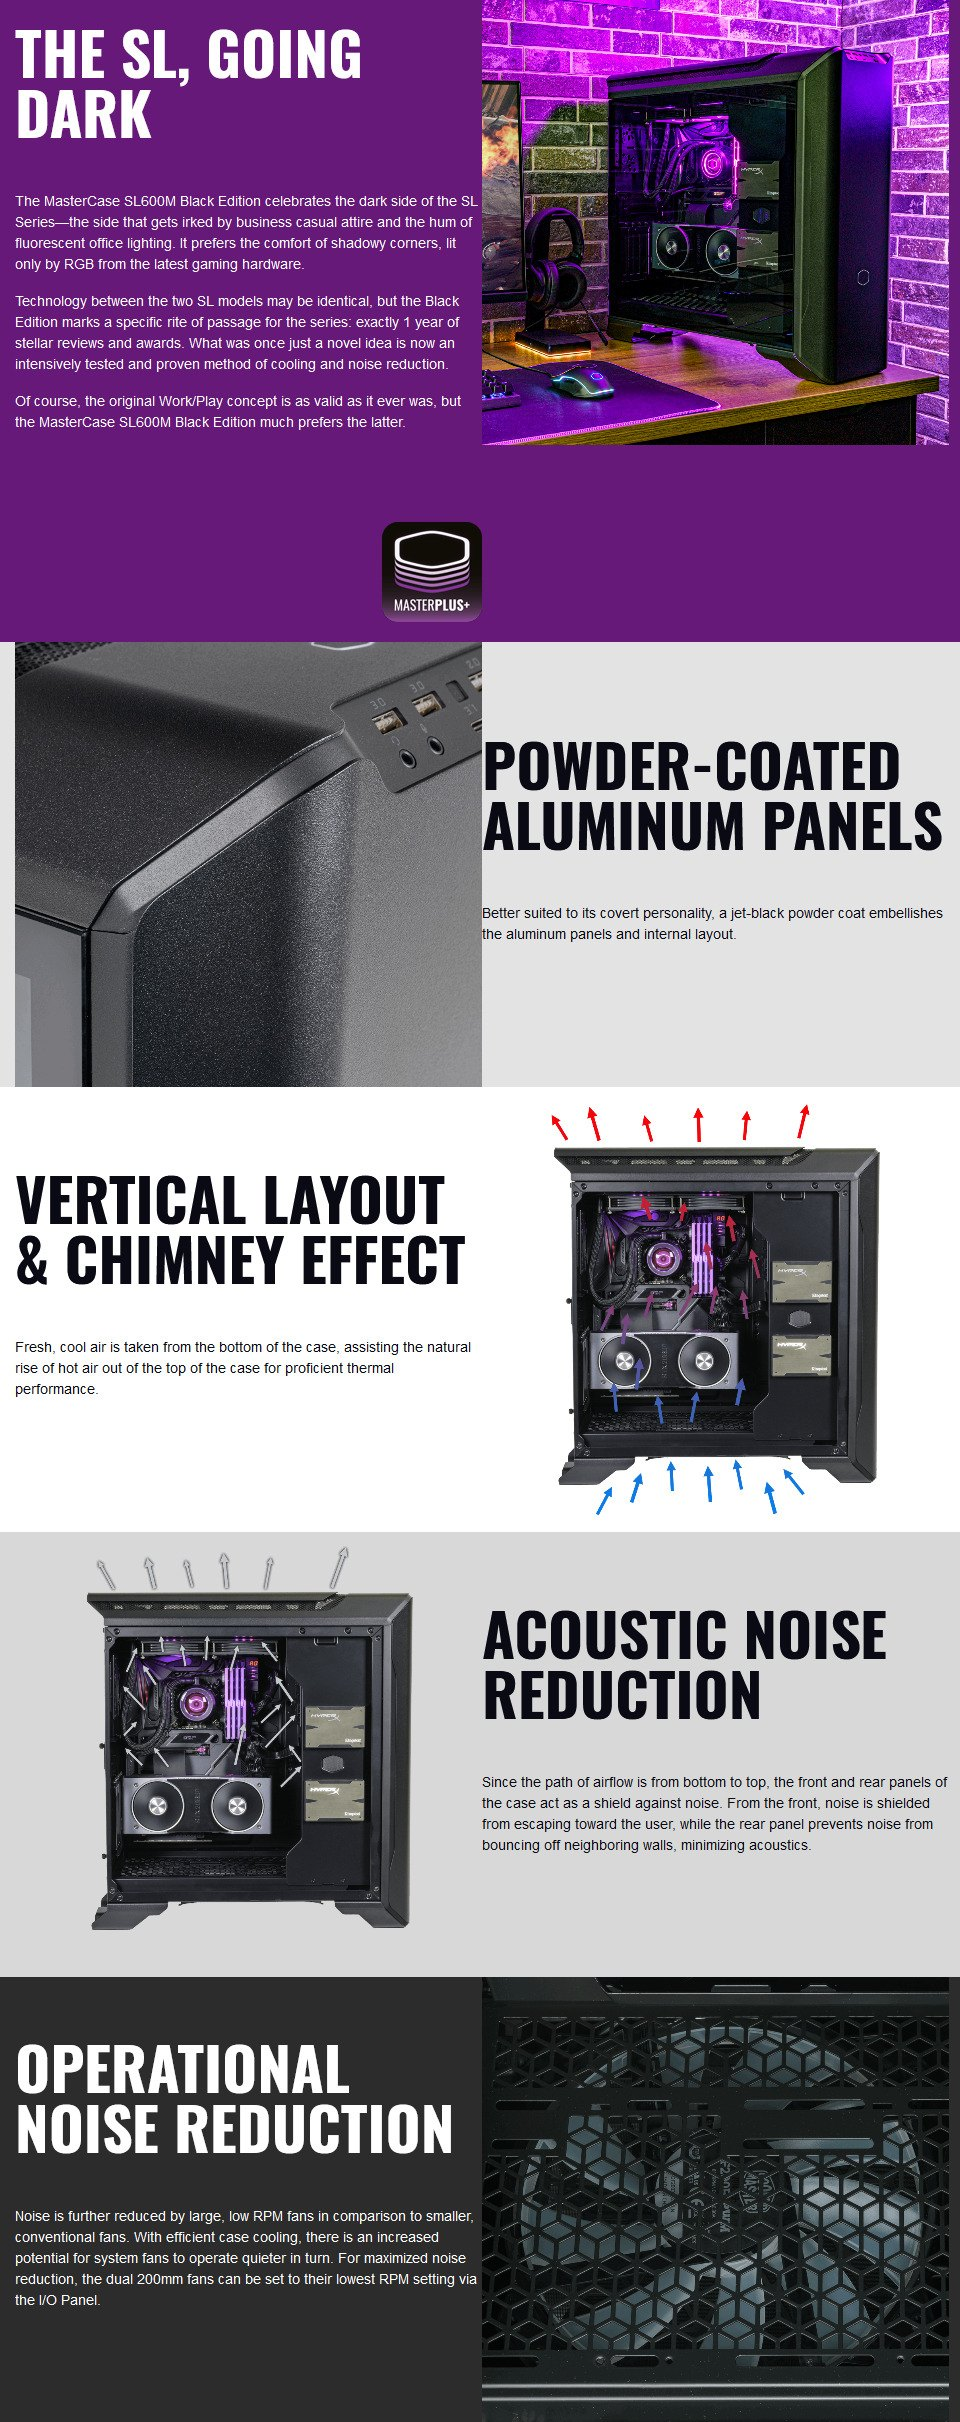 Cooler Master MasterCase SL600M Black Edition features